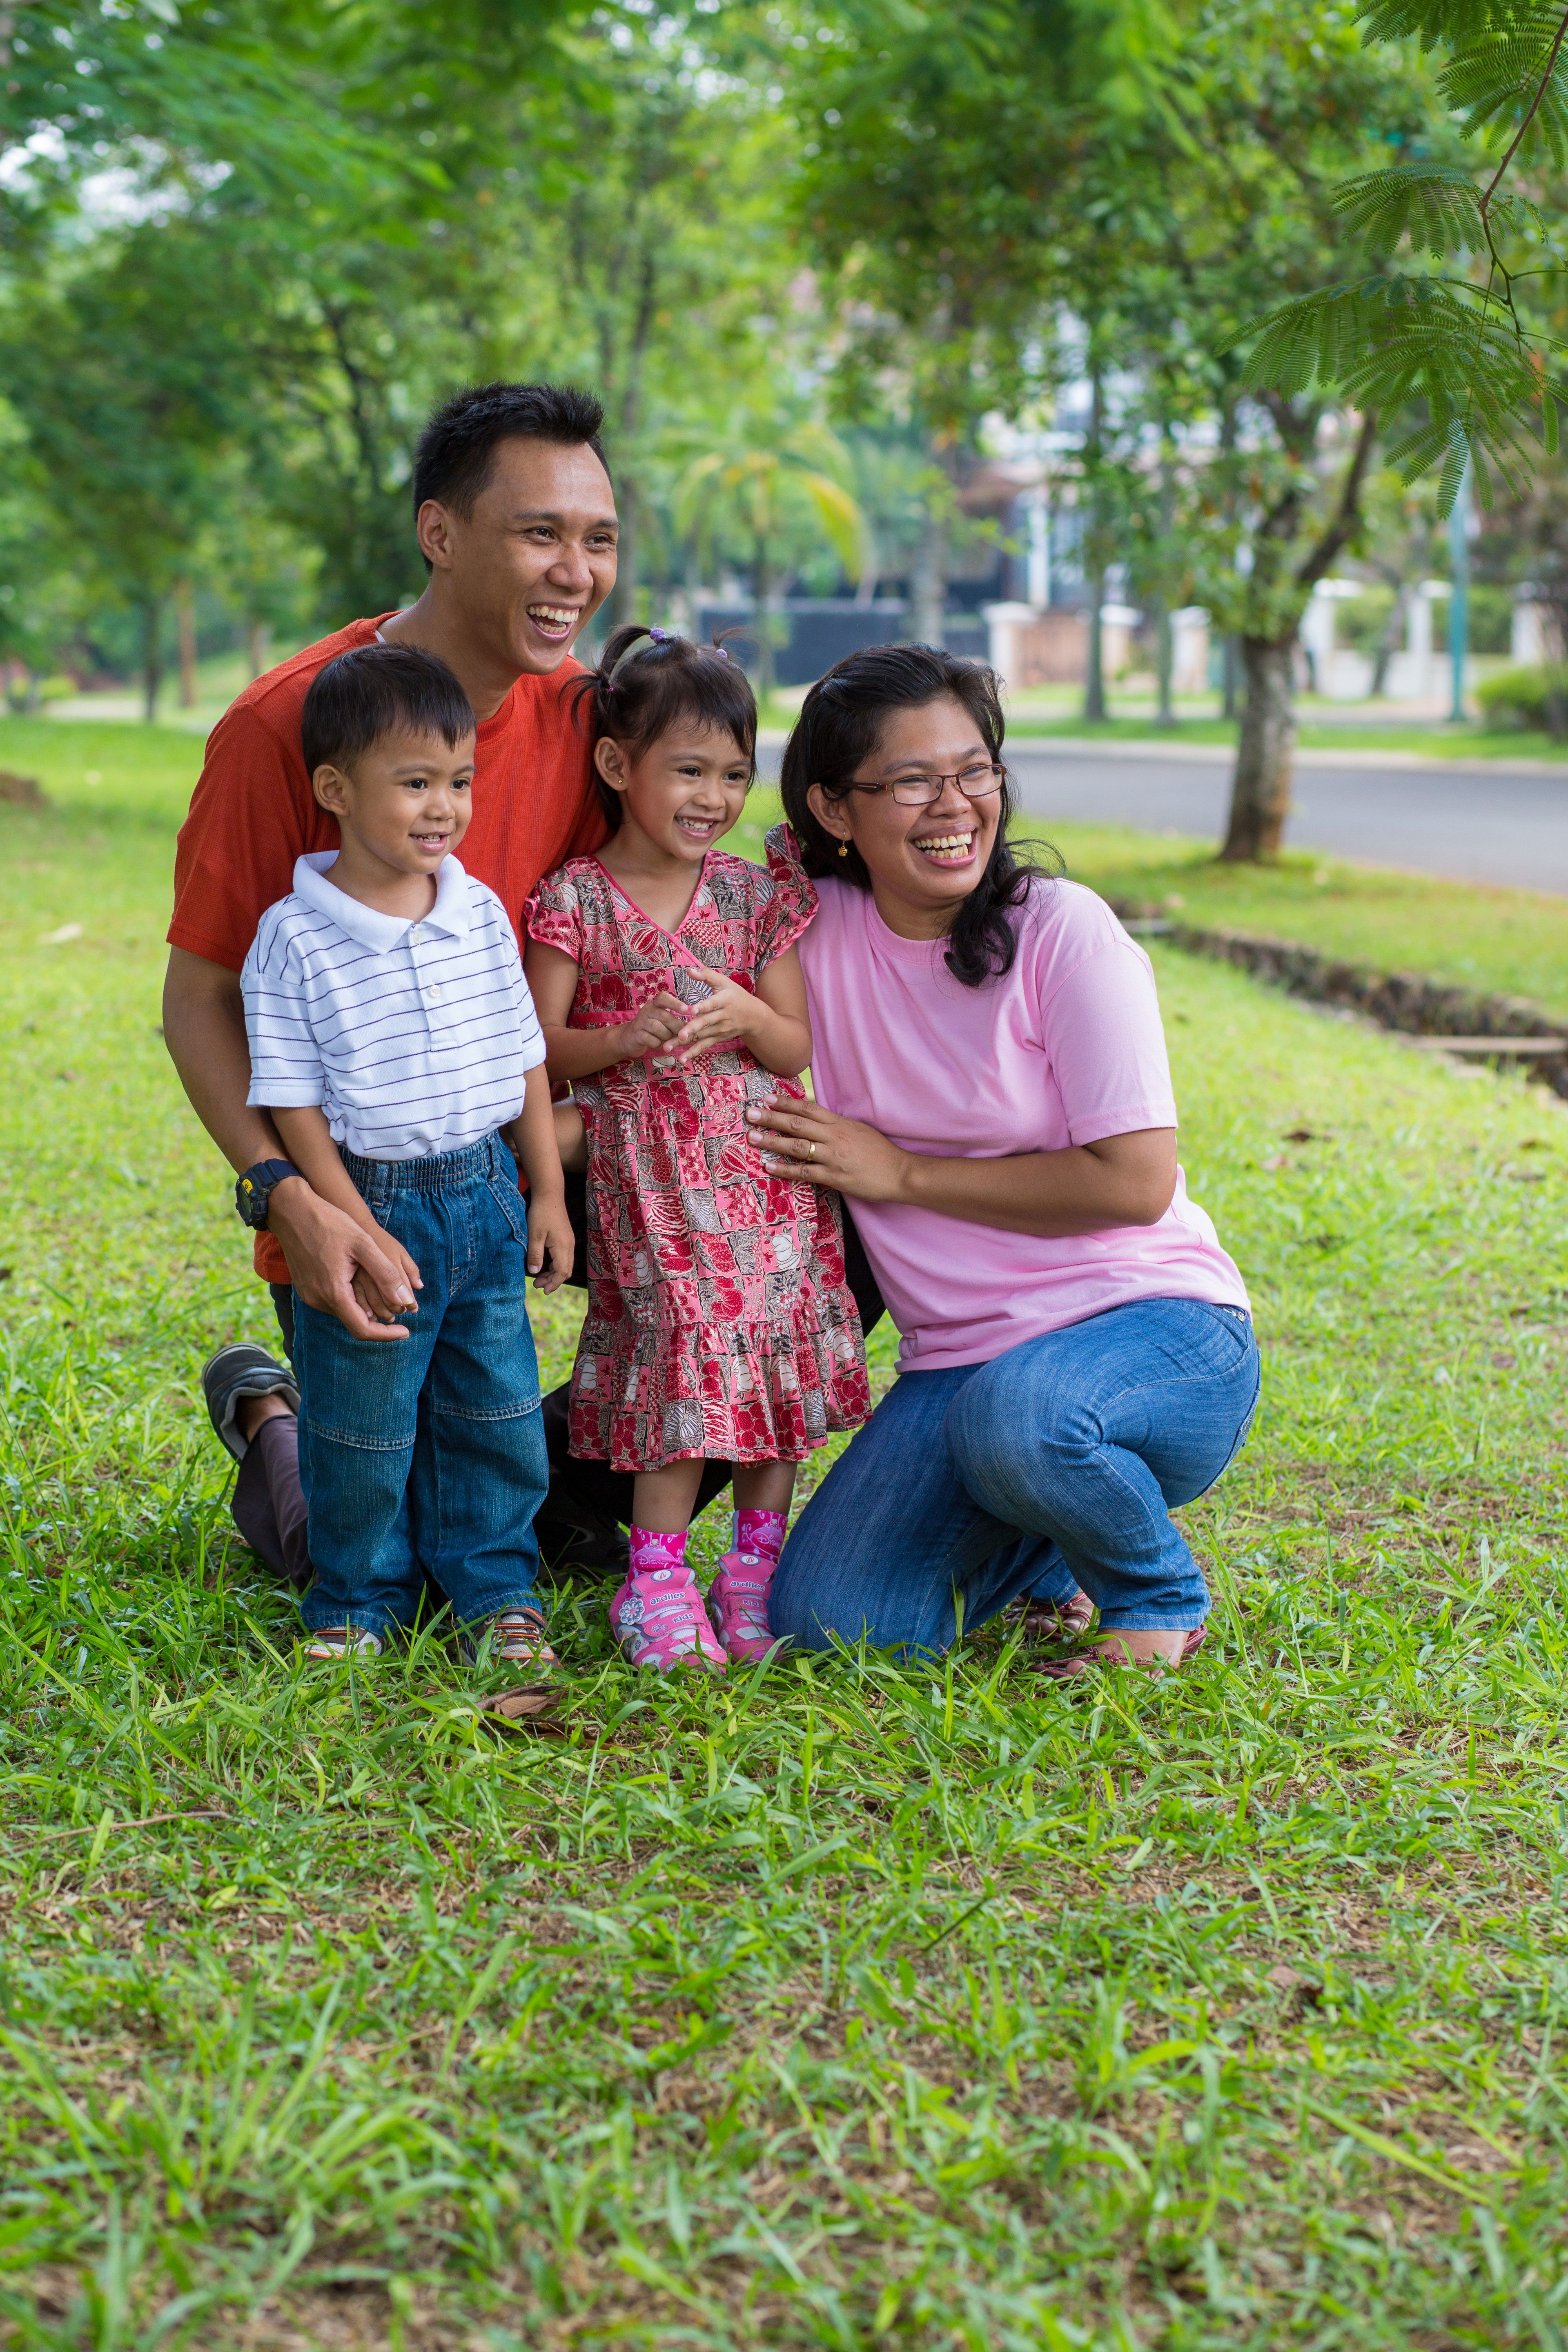 A portrait of a family from Indonesia.